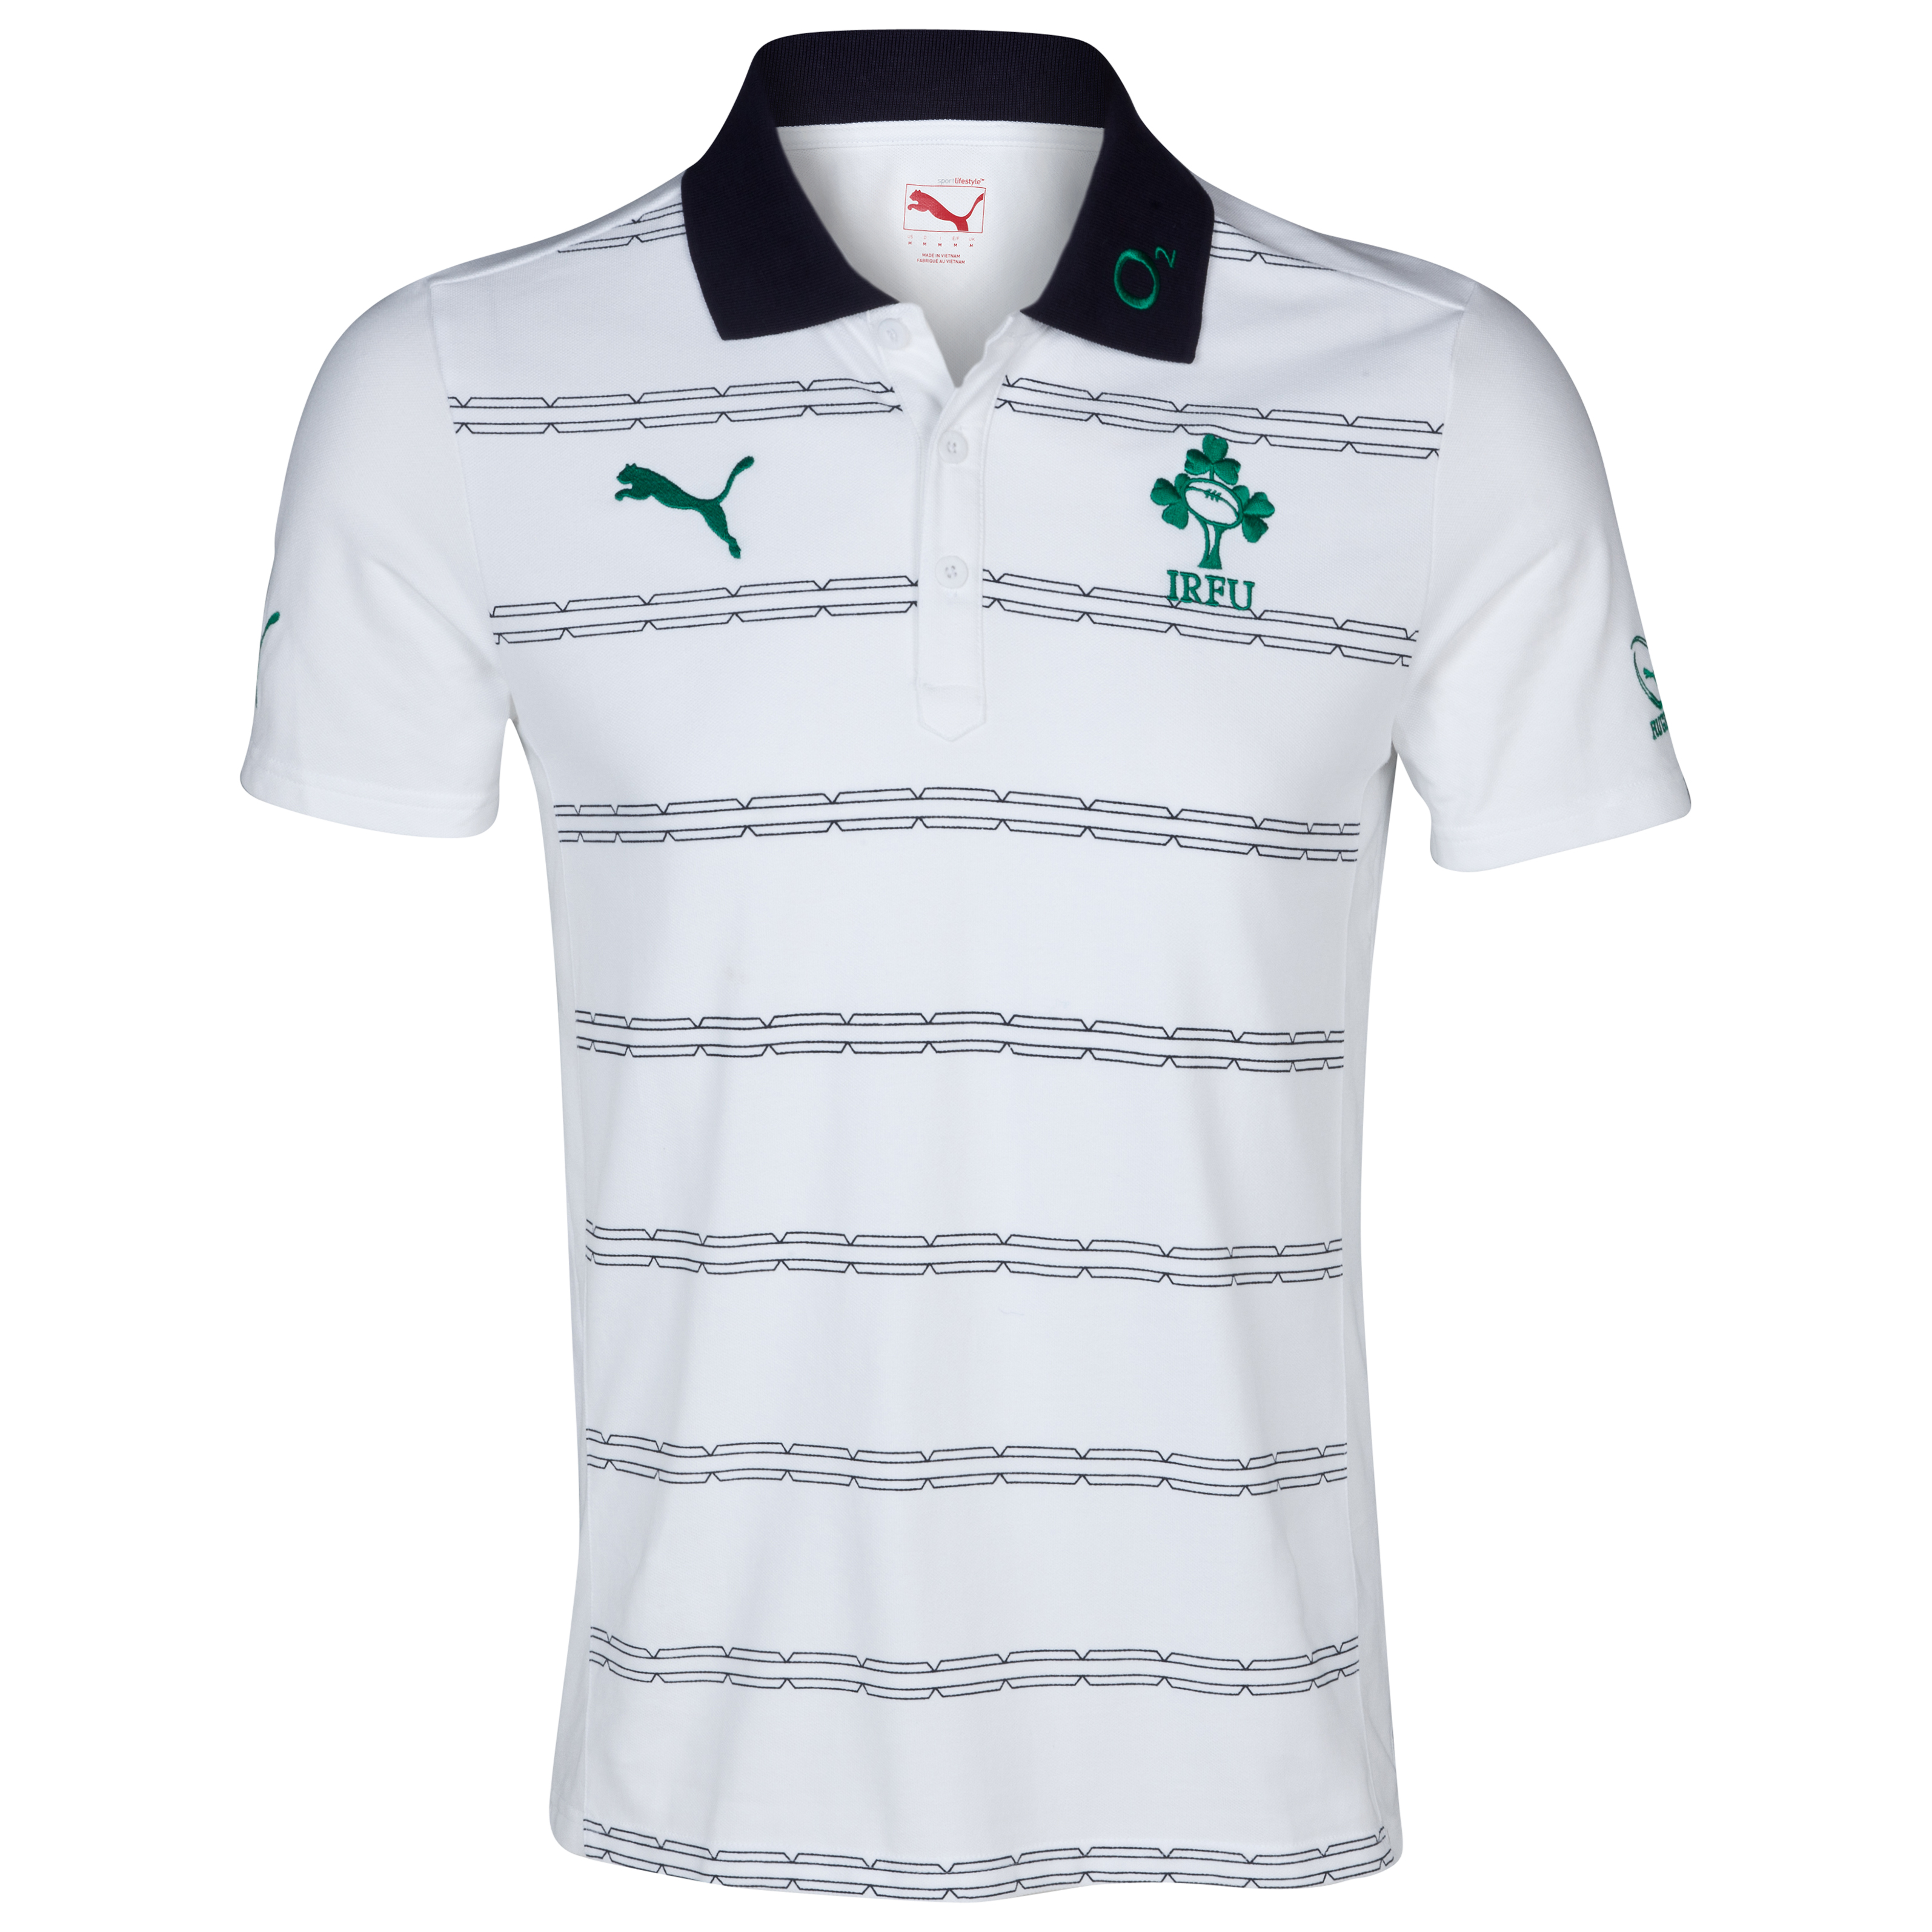 Ireland Rugby Hooped Polo - White/New Navy/Powder Green